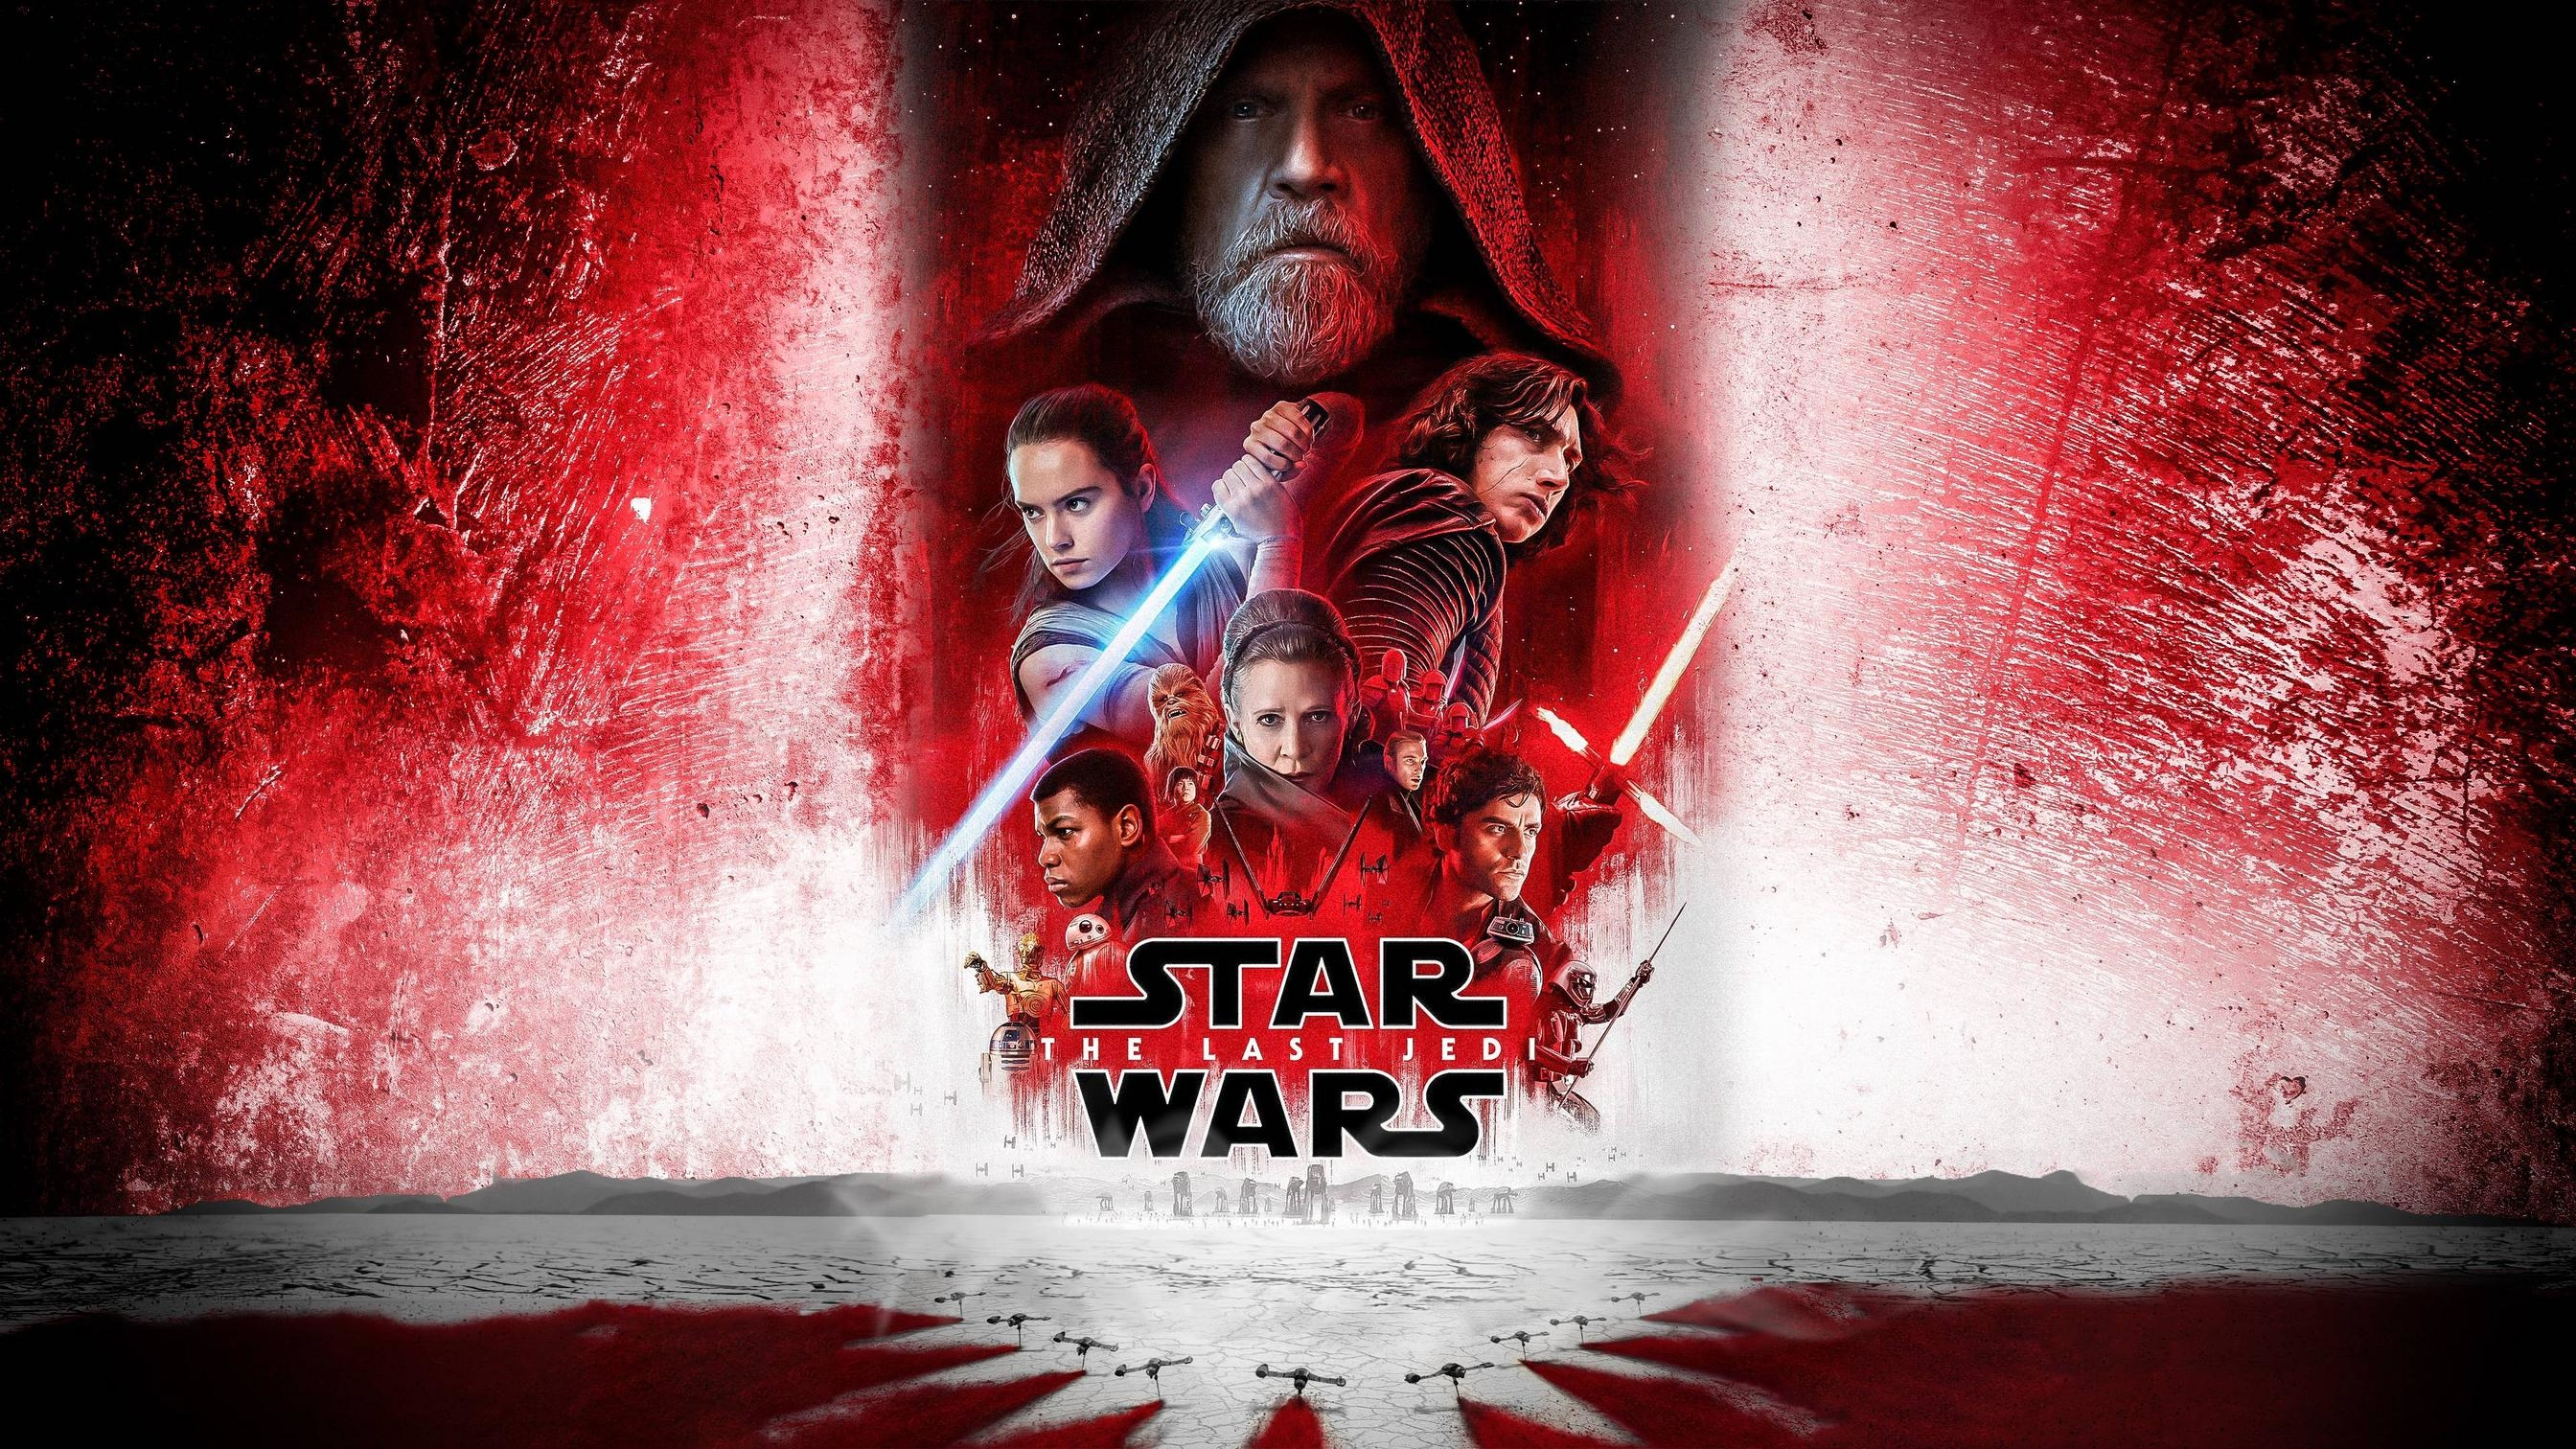 Star Wars 8 The Last Jedi 2017 Wallpaper Hd Movies 4k Wallpapers Images Photos And Background